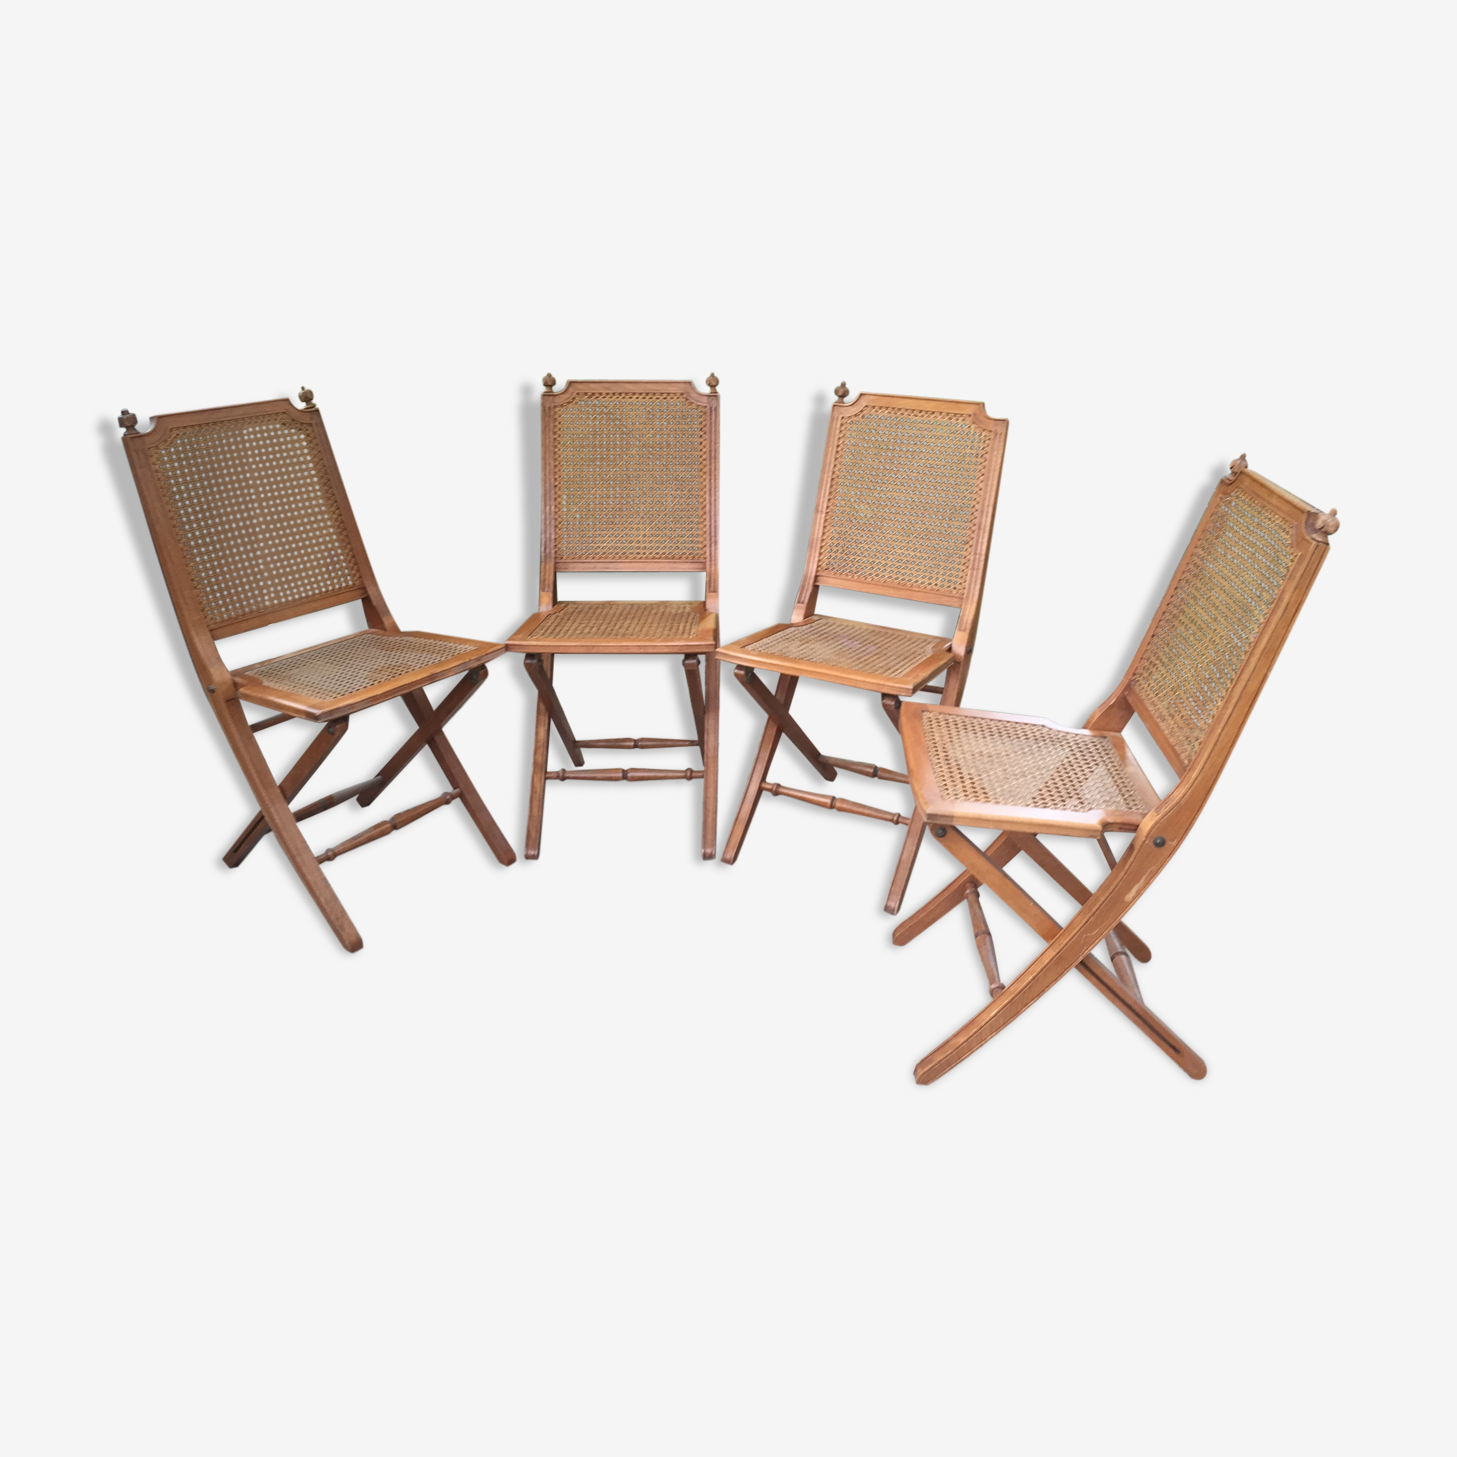 Set of 4 canees folding chairs